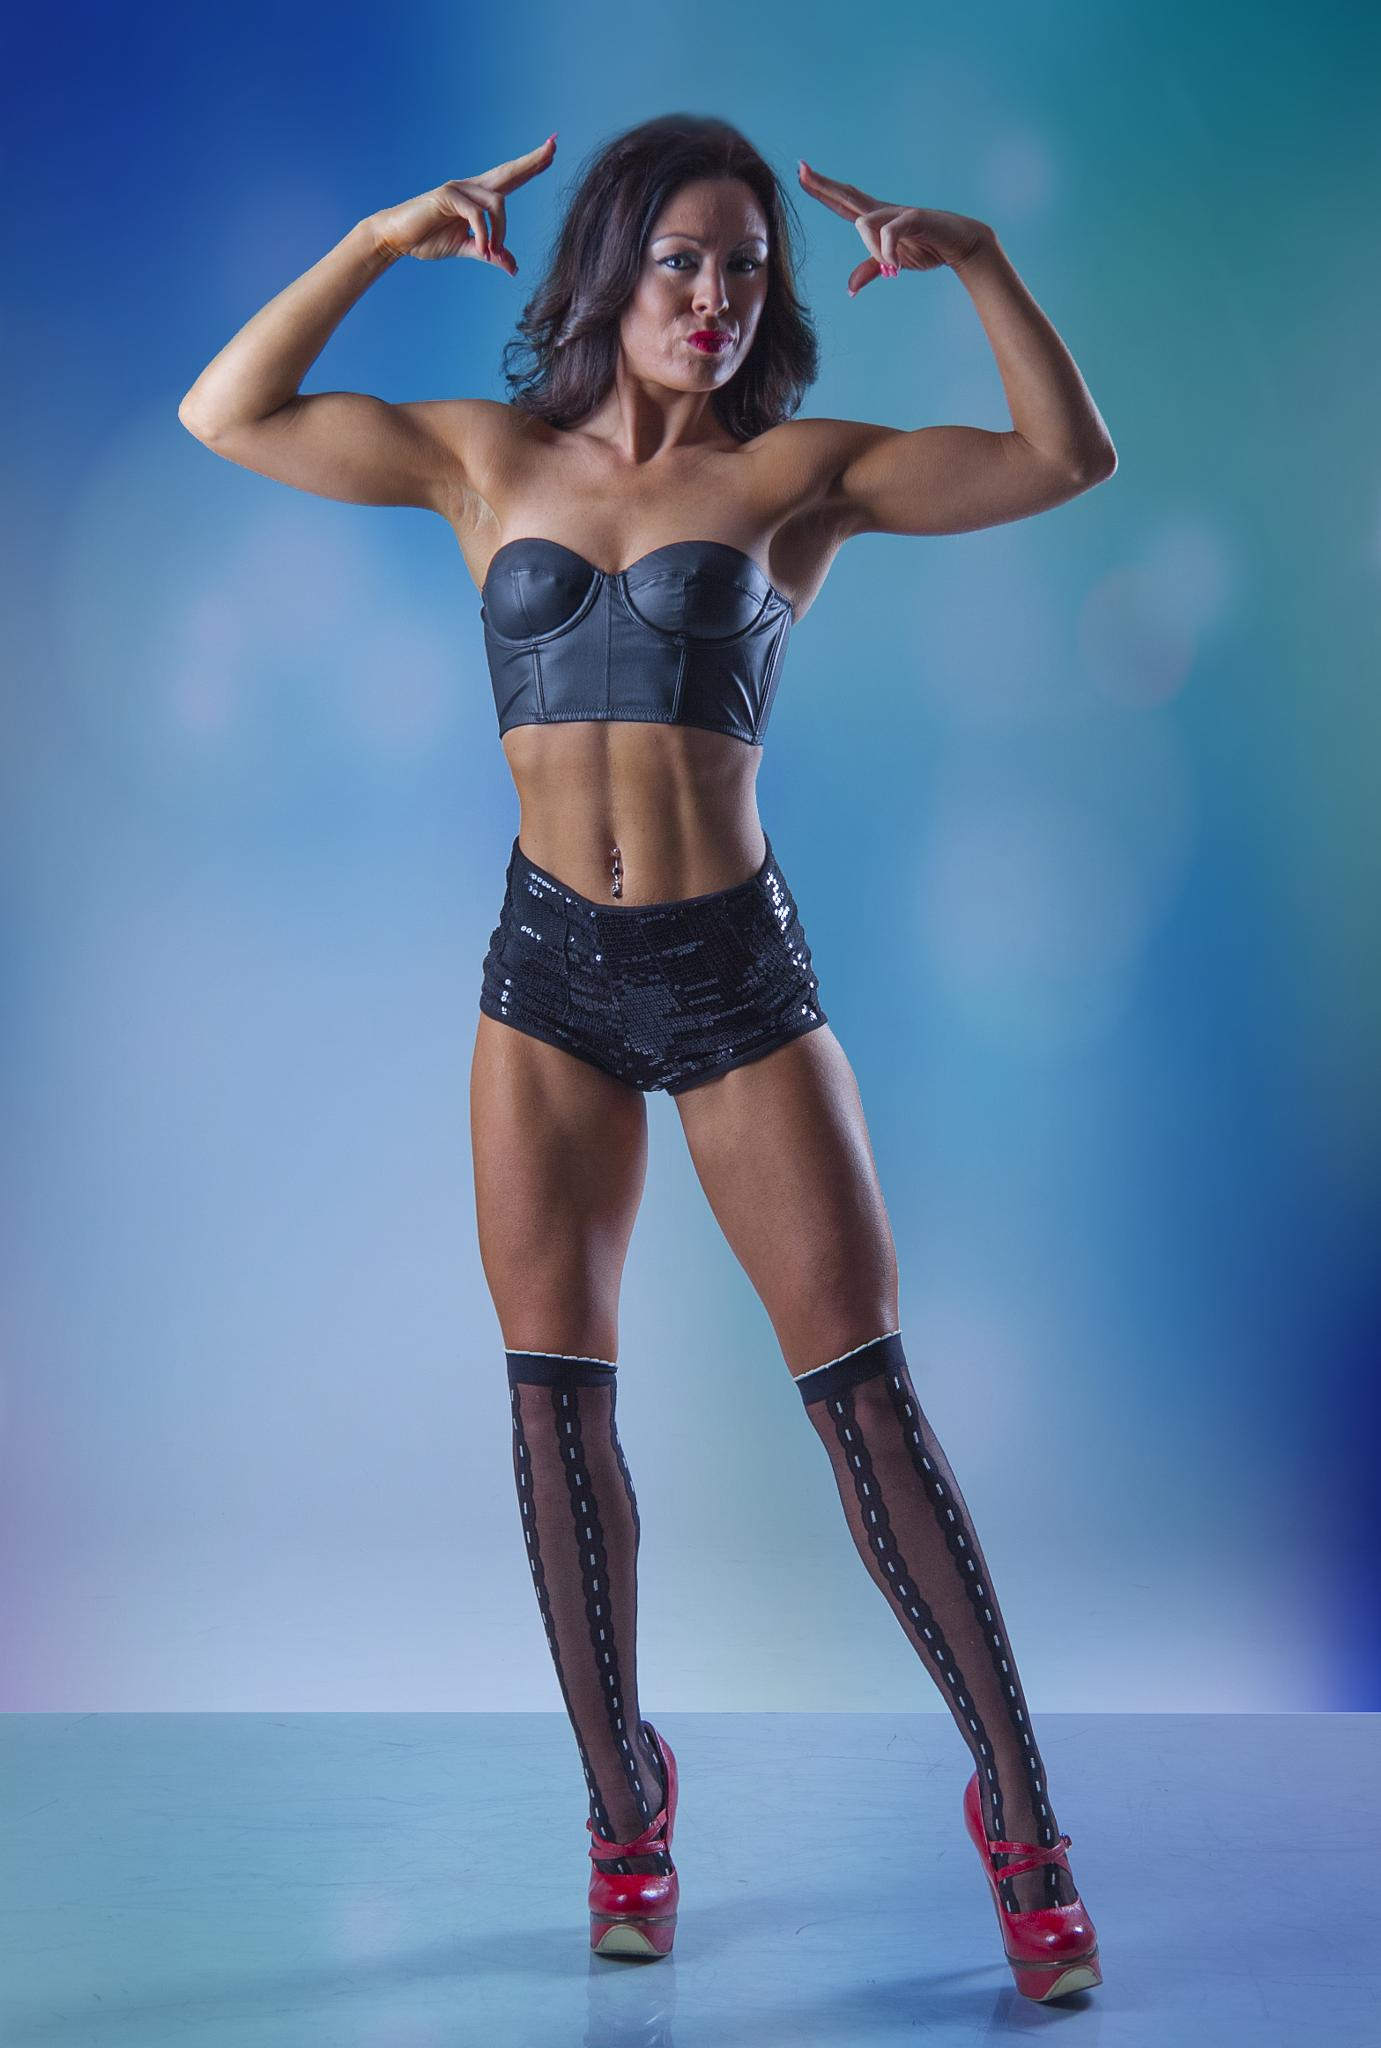 Fitness Model 3 by Tenacious_T